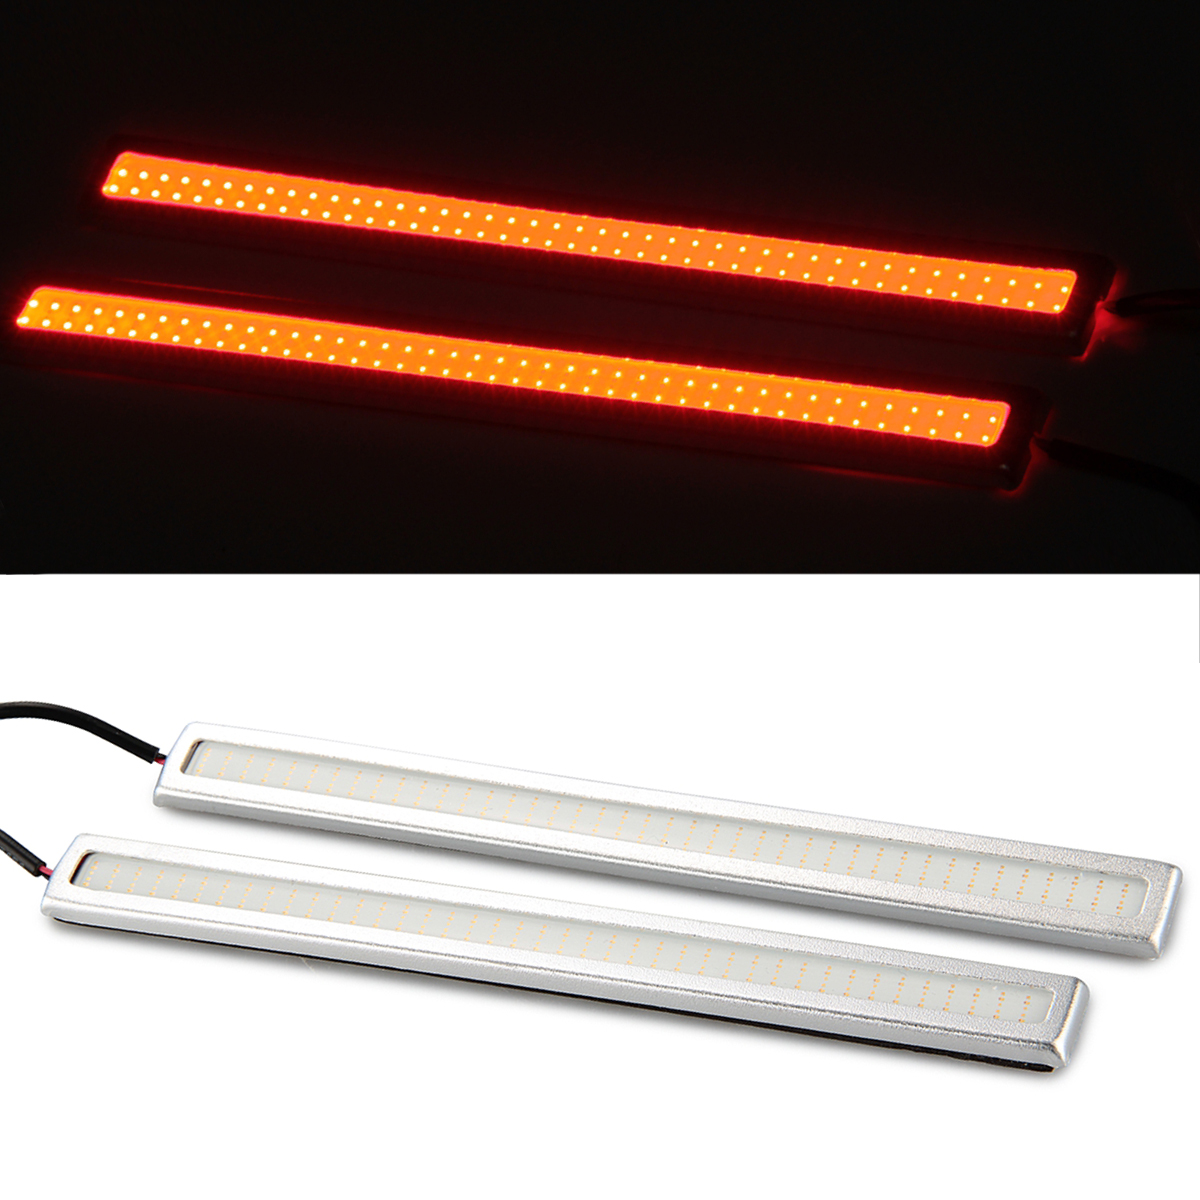 2 x 6W COB Car Red LED Daytime Running Light DRL Fog Truck Driving Lamp(China (Mainland))